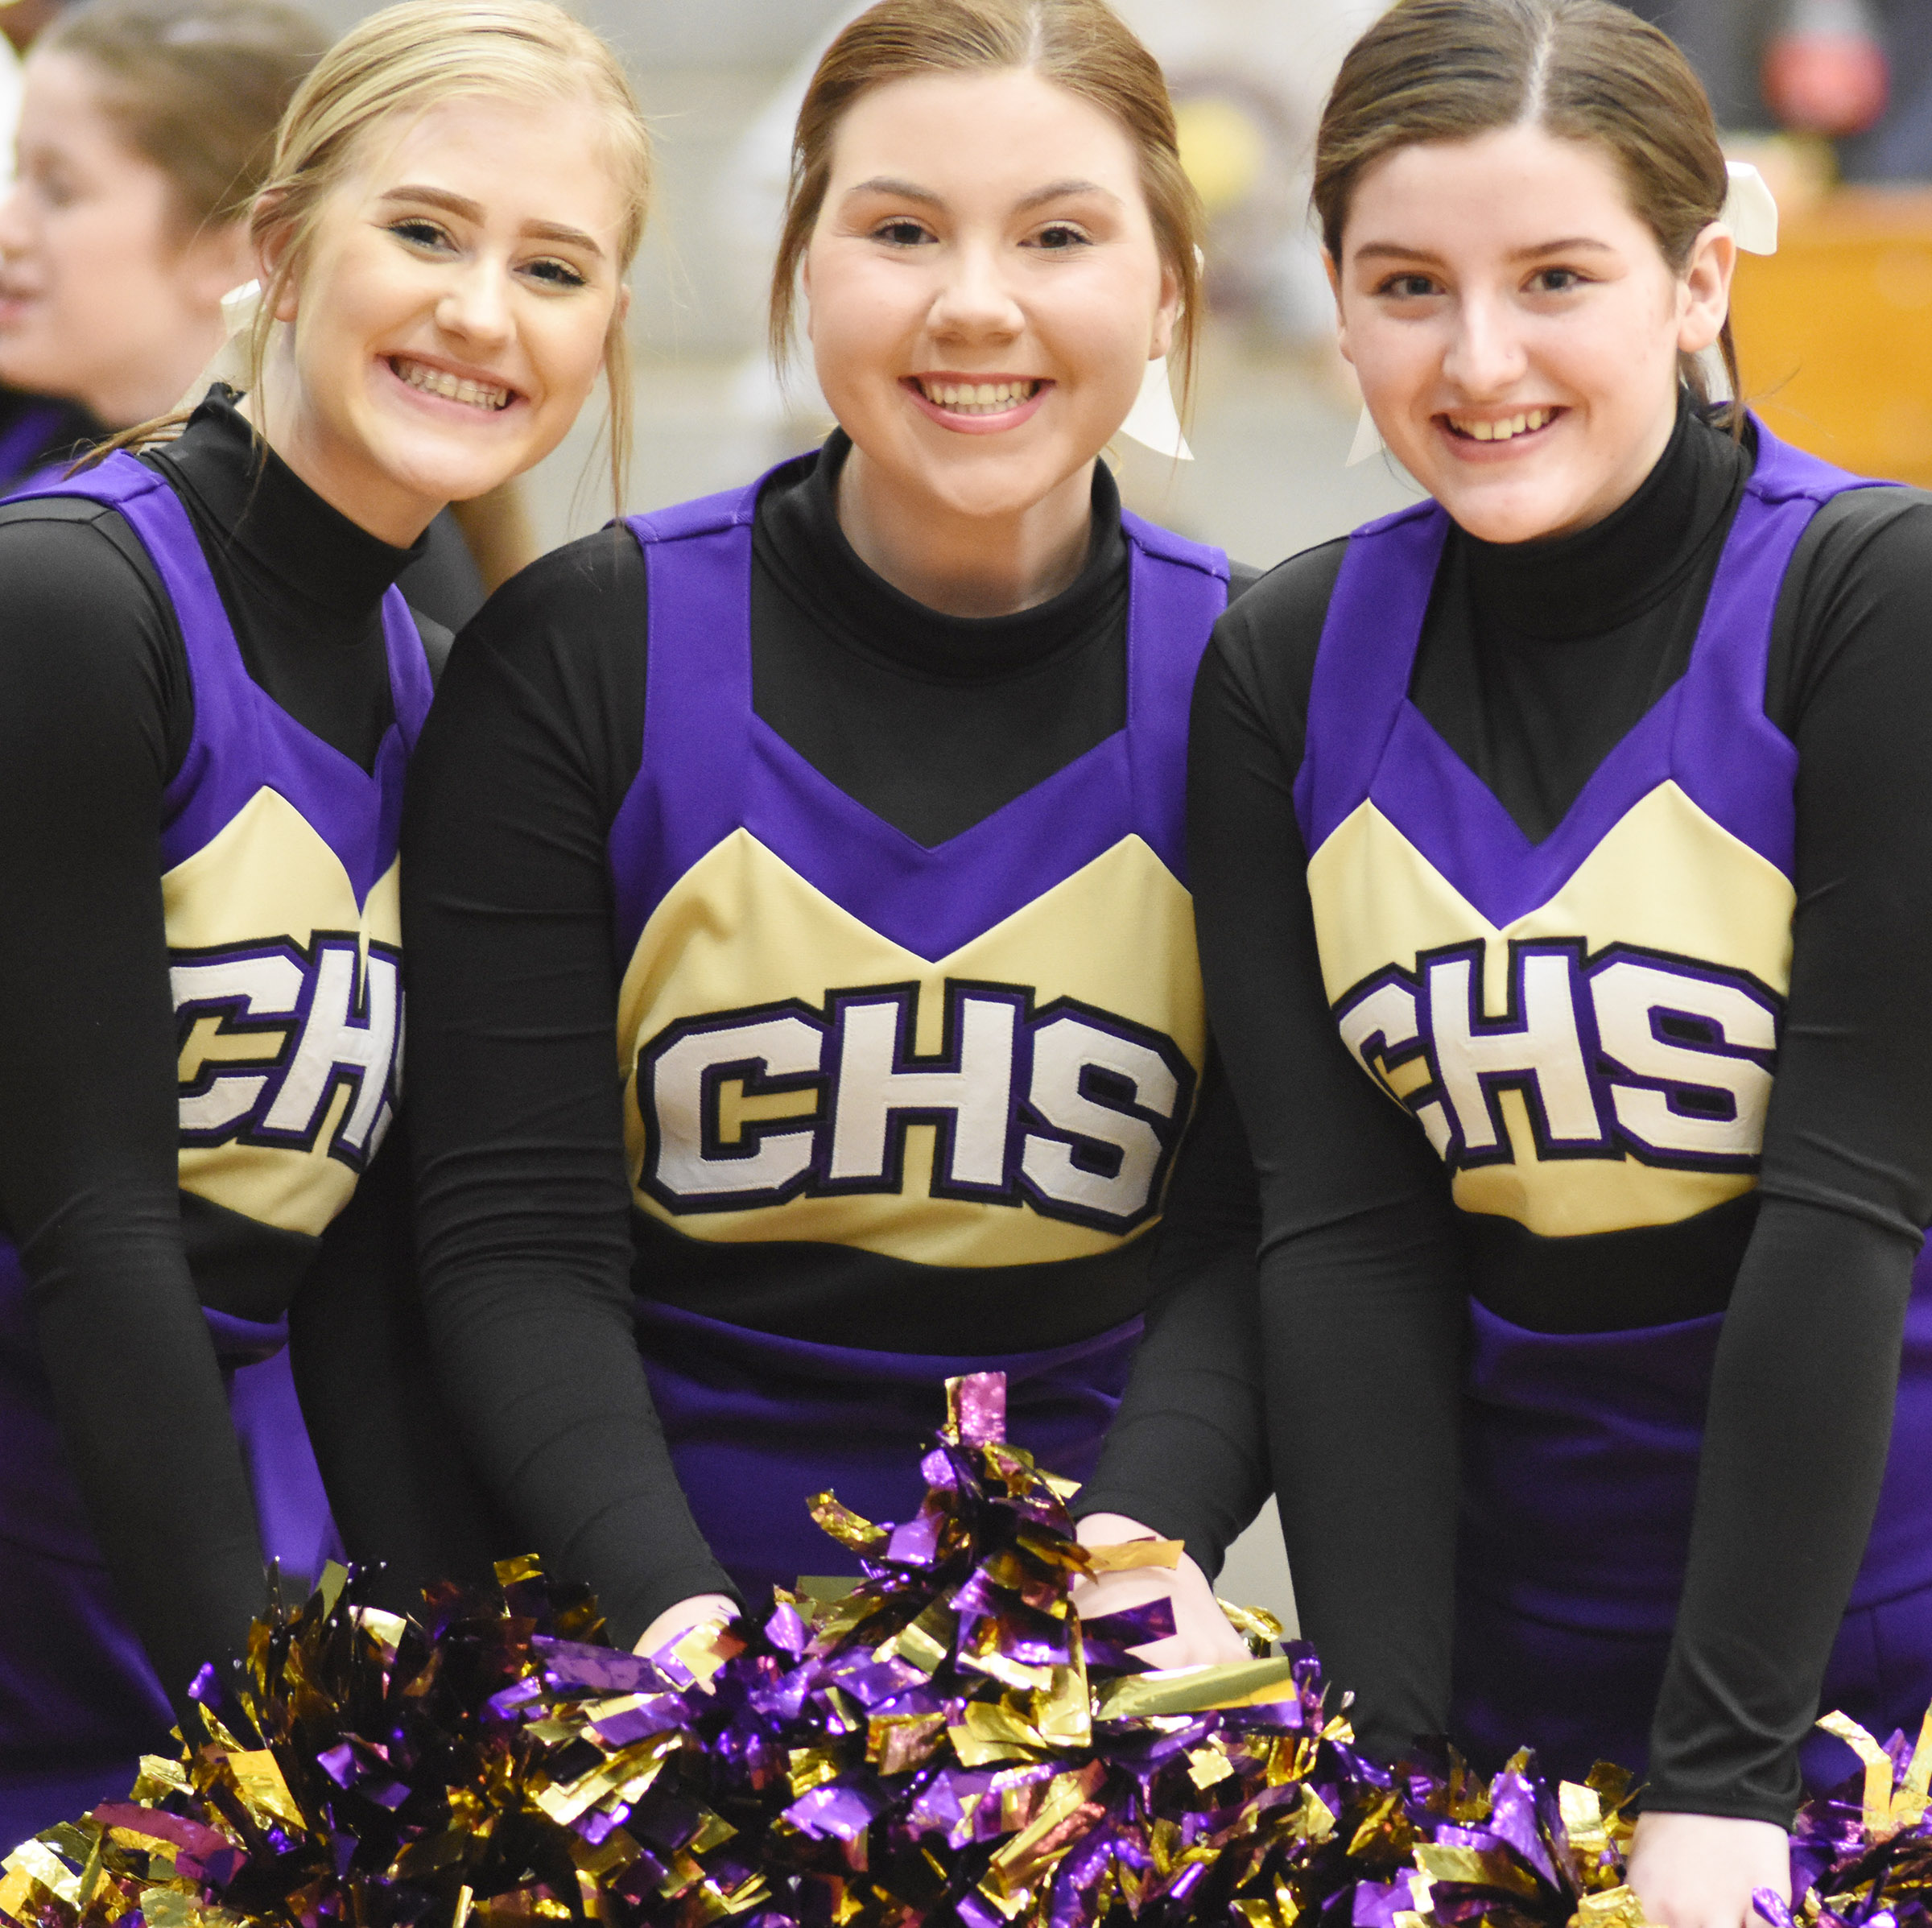 From left, CHS sophomores Isabella Osborne, Lauryn Agathen and Alli Wilson cheer for the Eagles.